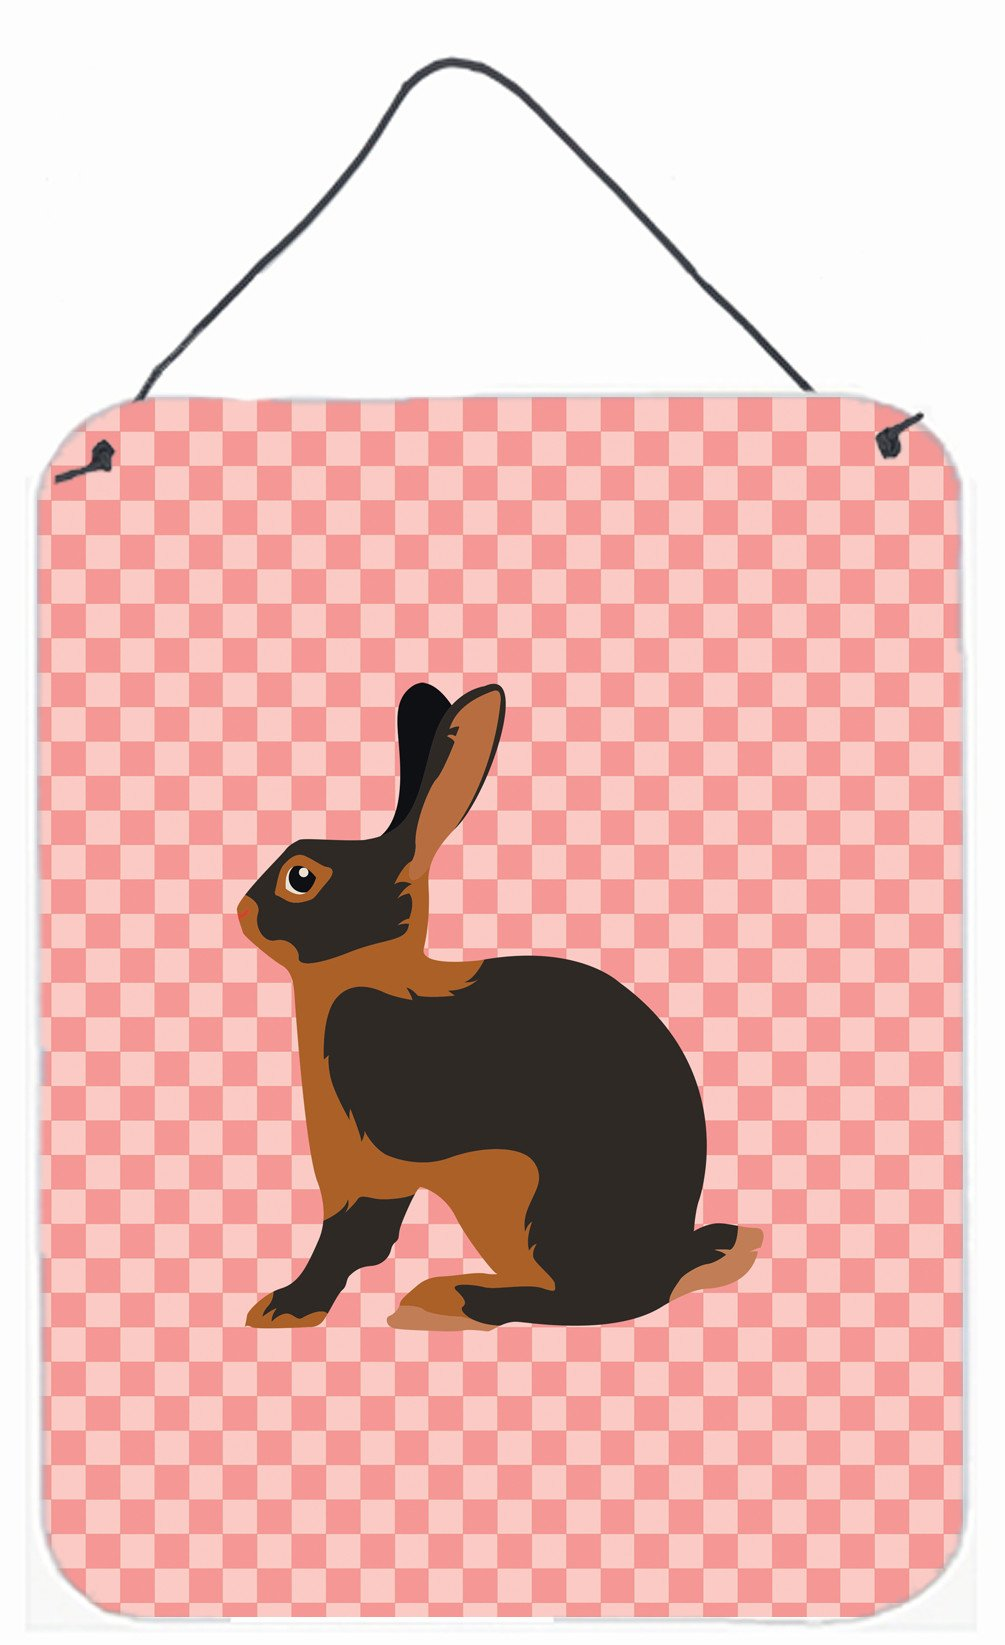 Tan Rabbit Pink Check Wall or Door Hanging Prints BB7963DS1216 by Caroline's Treasures